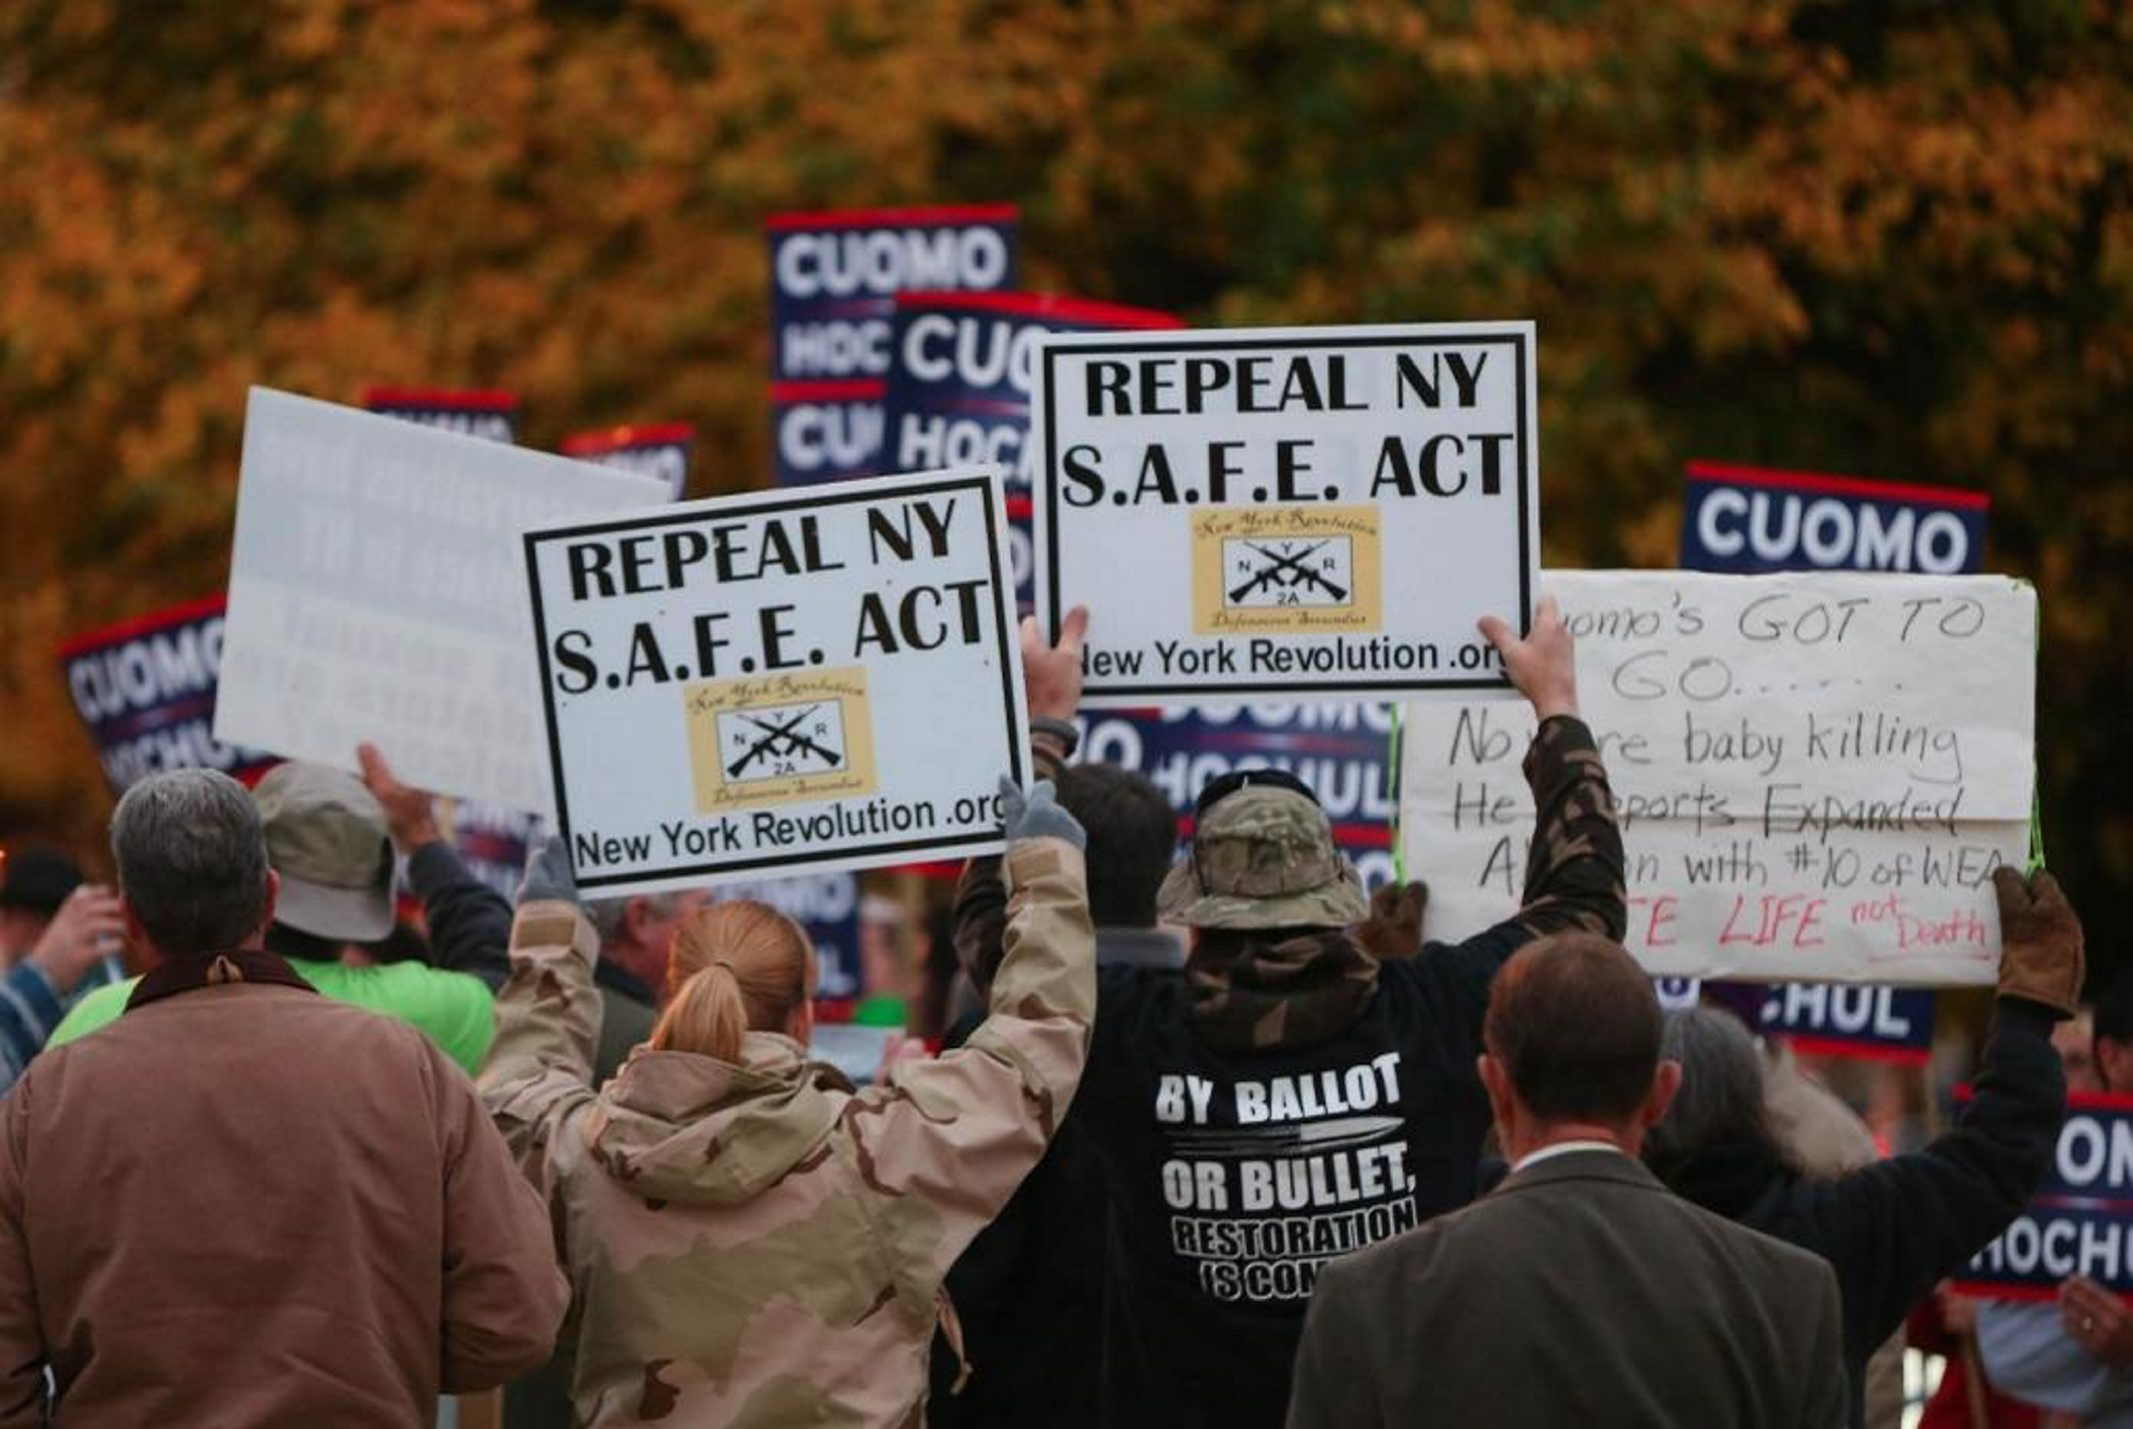 Some opponents of New York's SAFE Act are shown in a file photo outside the 2014 gubernatorial debate in 2014.